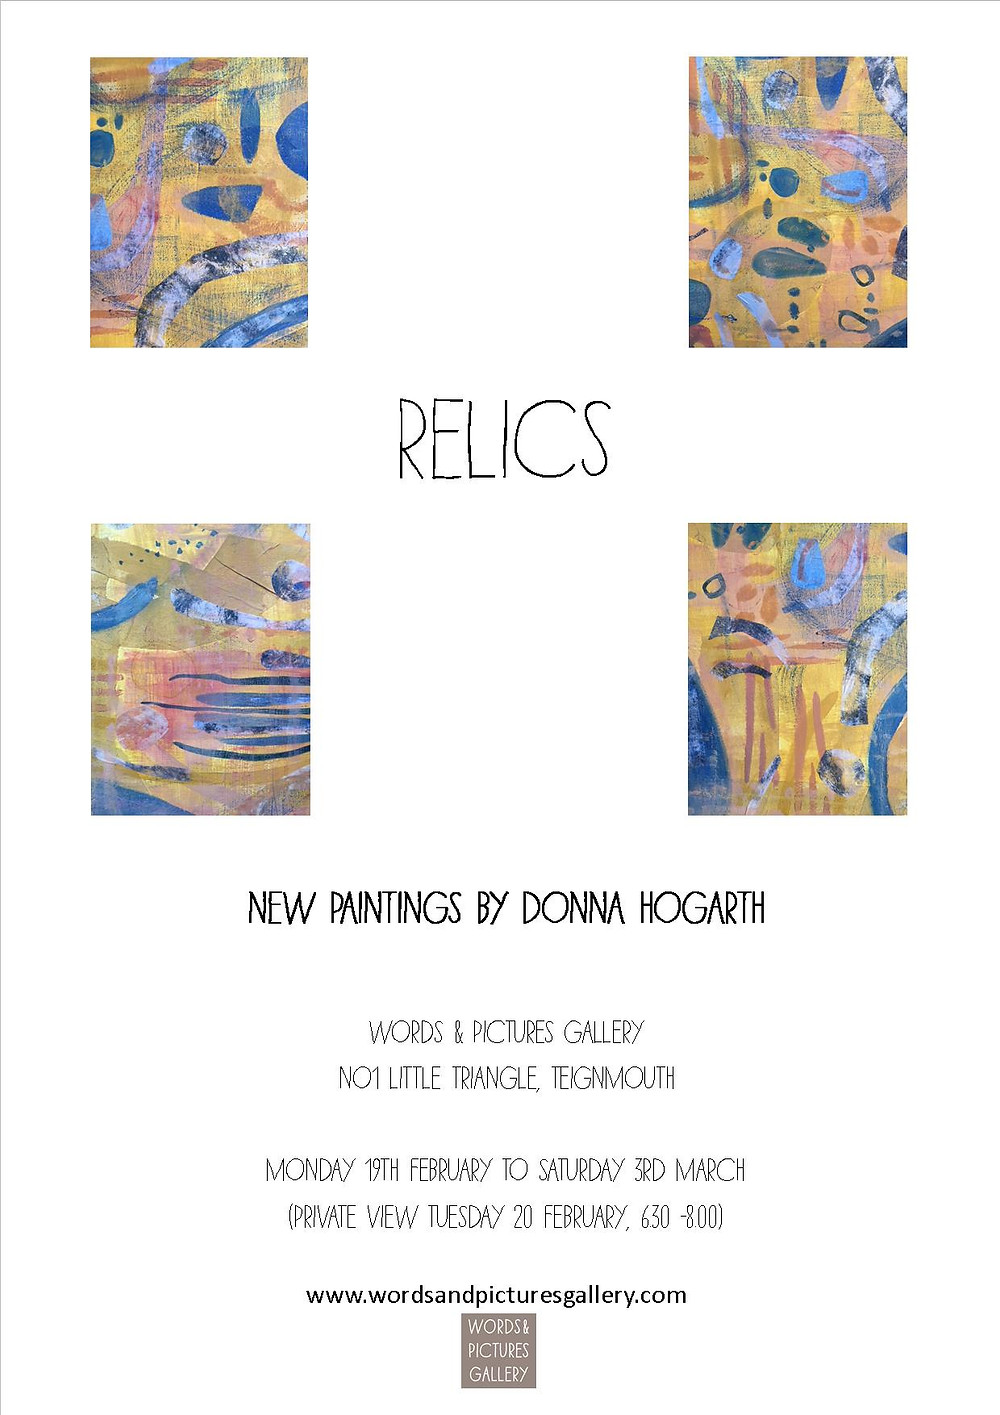 Painting exhibition Donna Hogarth Words & Pictures Gallery